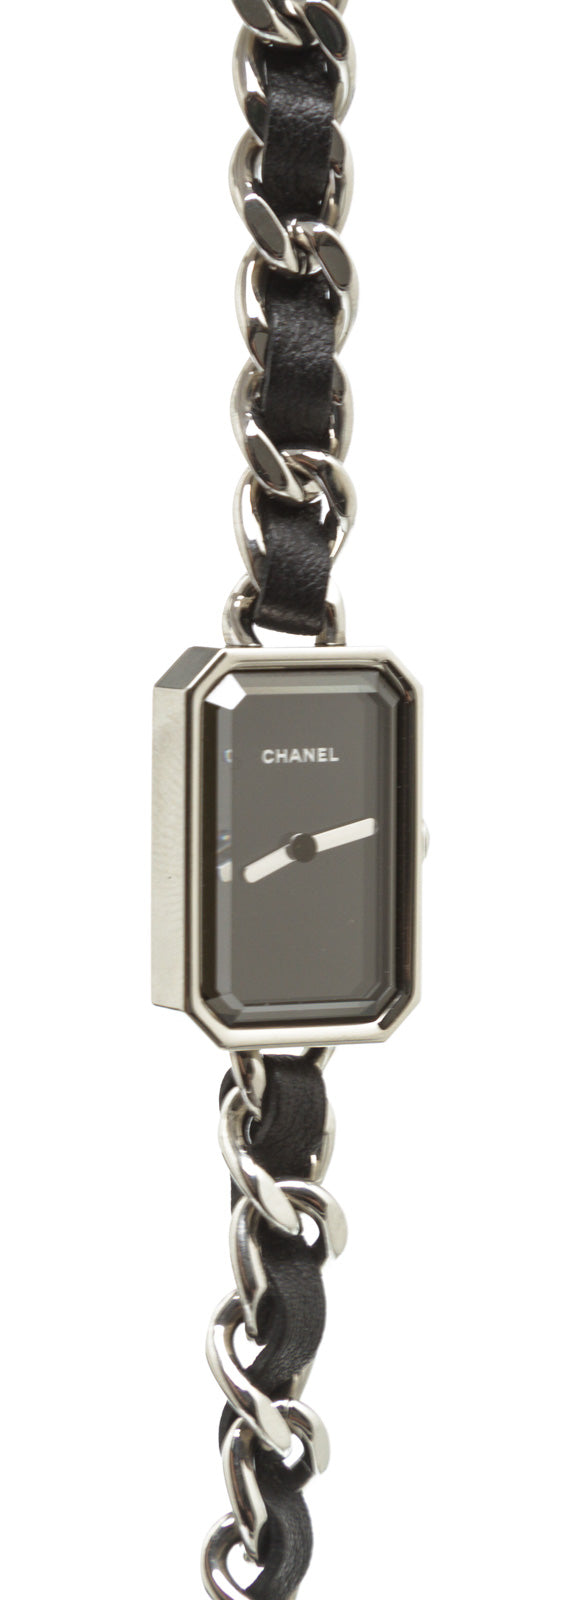 Chanel Black and Stainless Steel Première Rock Watch